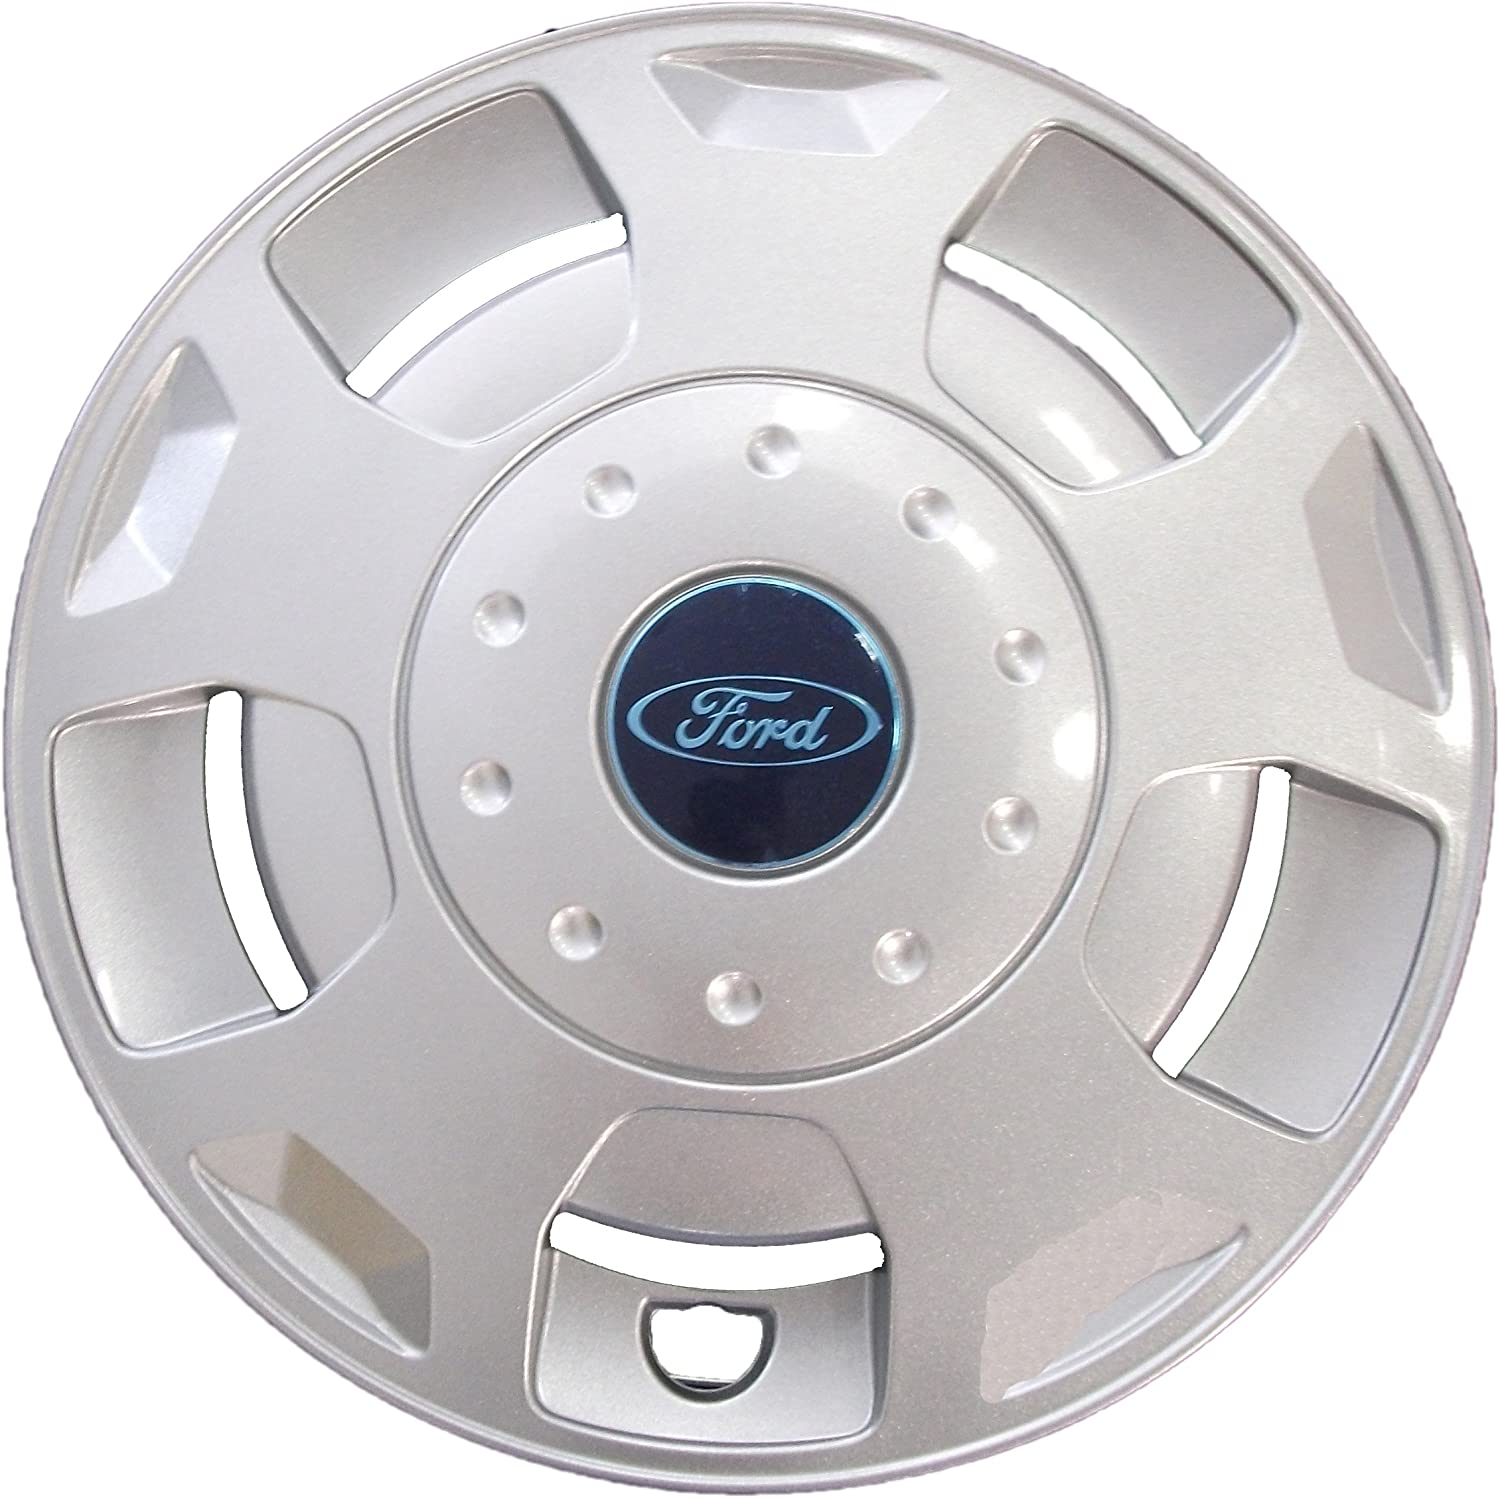 New Genuine FORD TRANSIT CONNECT Single Wheel Trim for 2002 Onwards 15 Inch